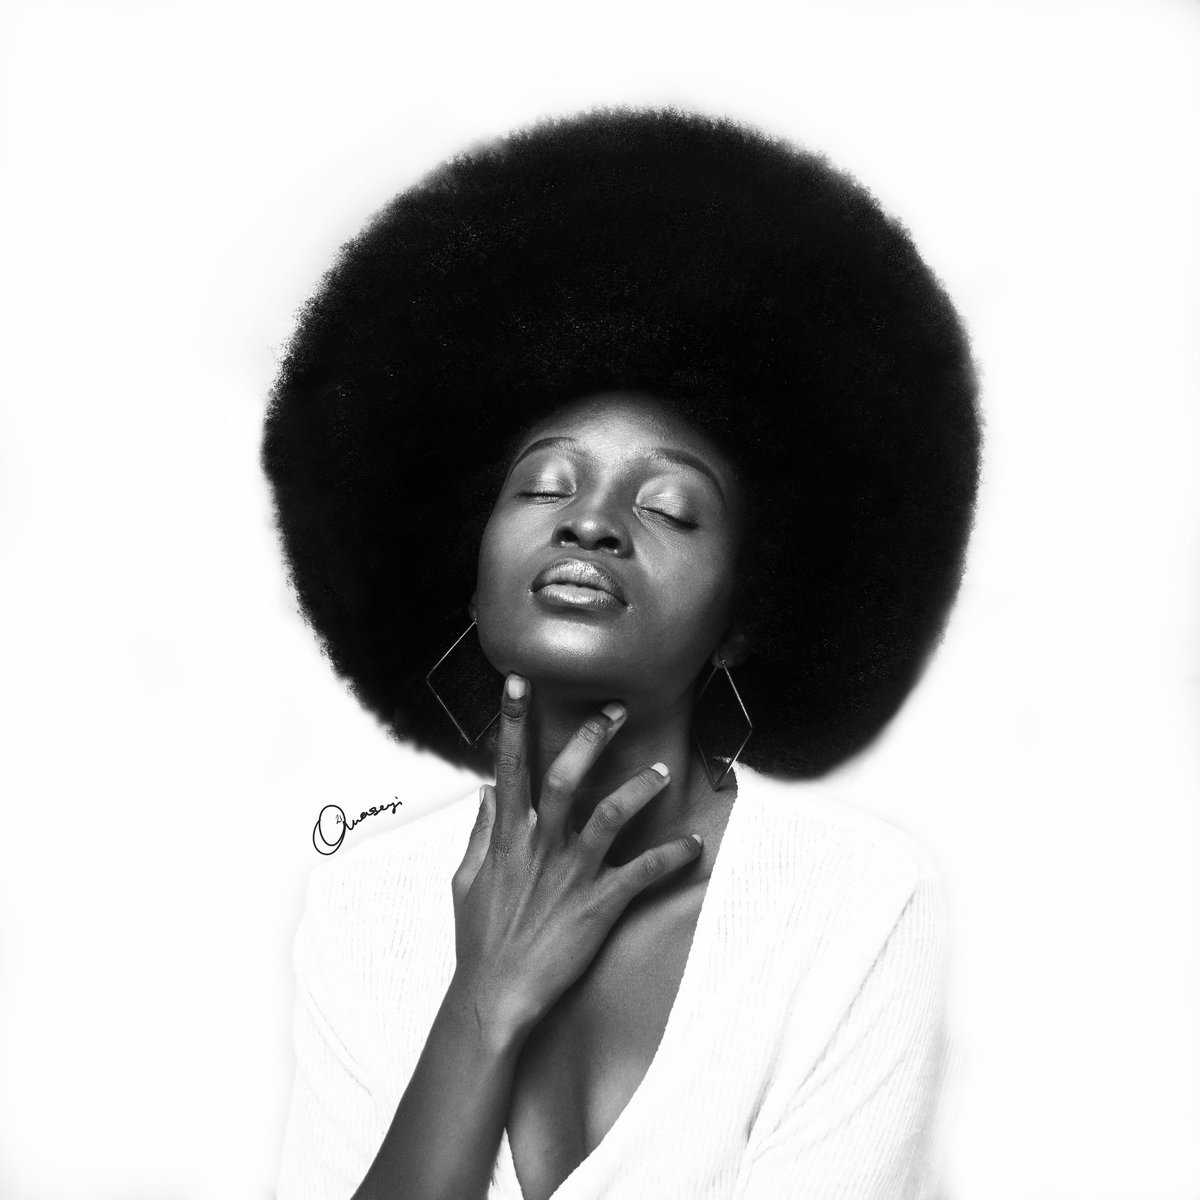 My love for black! Successful resumption to all the students out there, wishing you good luck! #ArtistOnTwitter #art #photography #NationalGirlsAndWomenInSportsDay #HappyBlackHistoryMonth